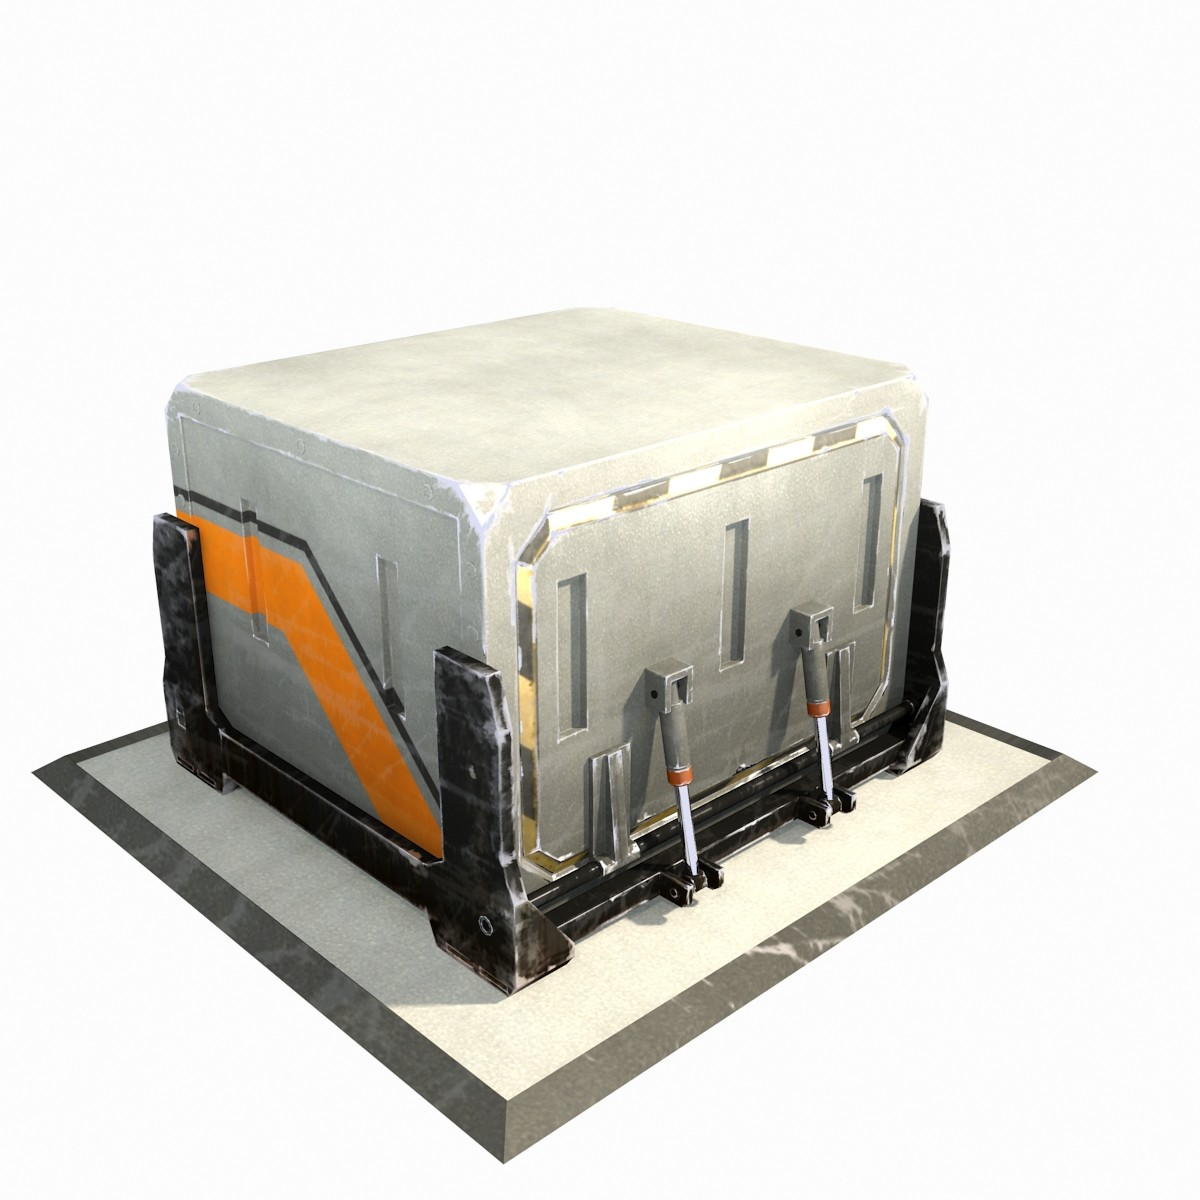 Container_render_40a.jpg